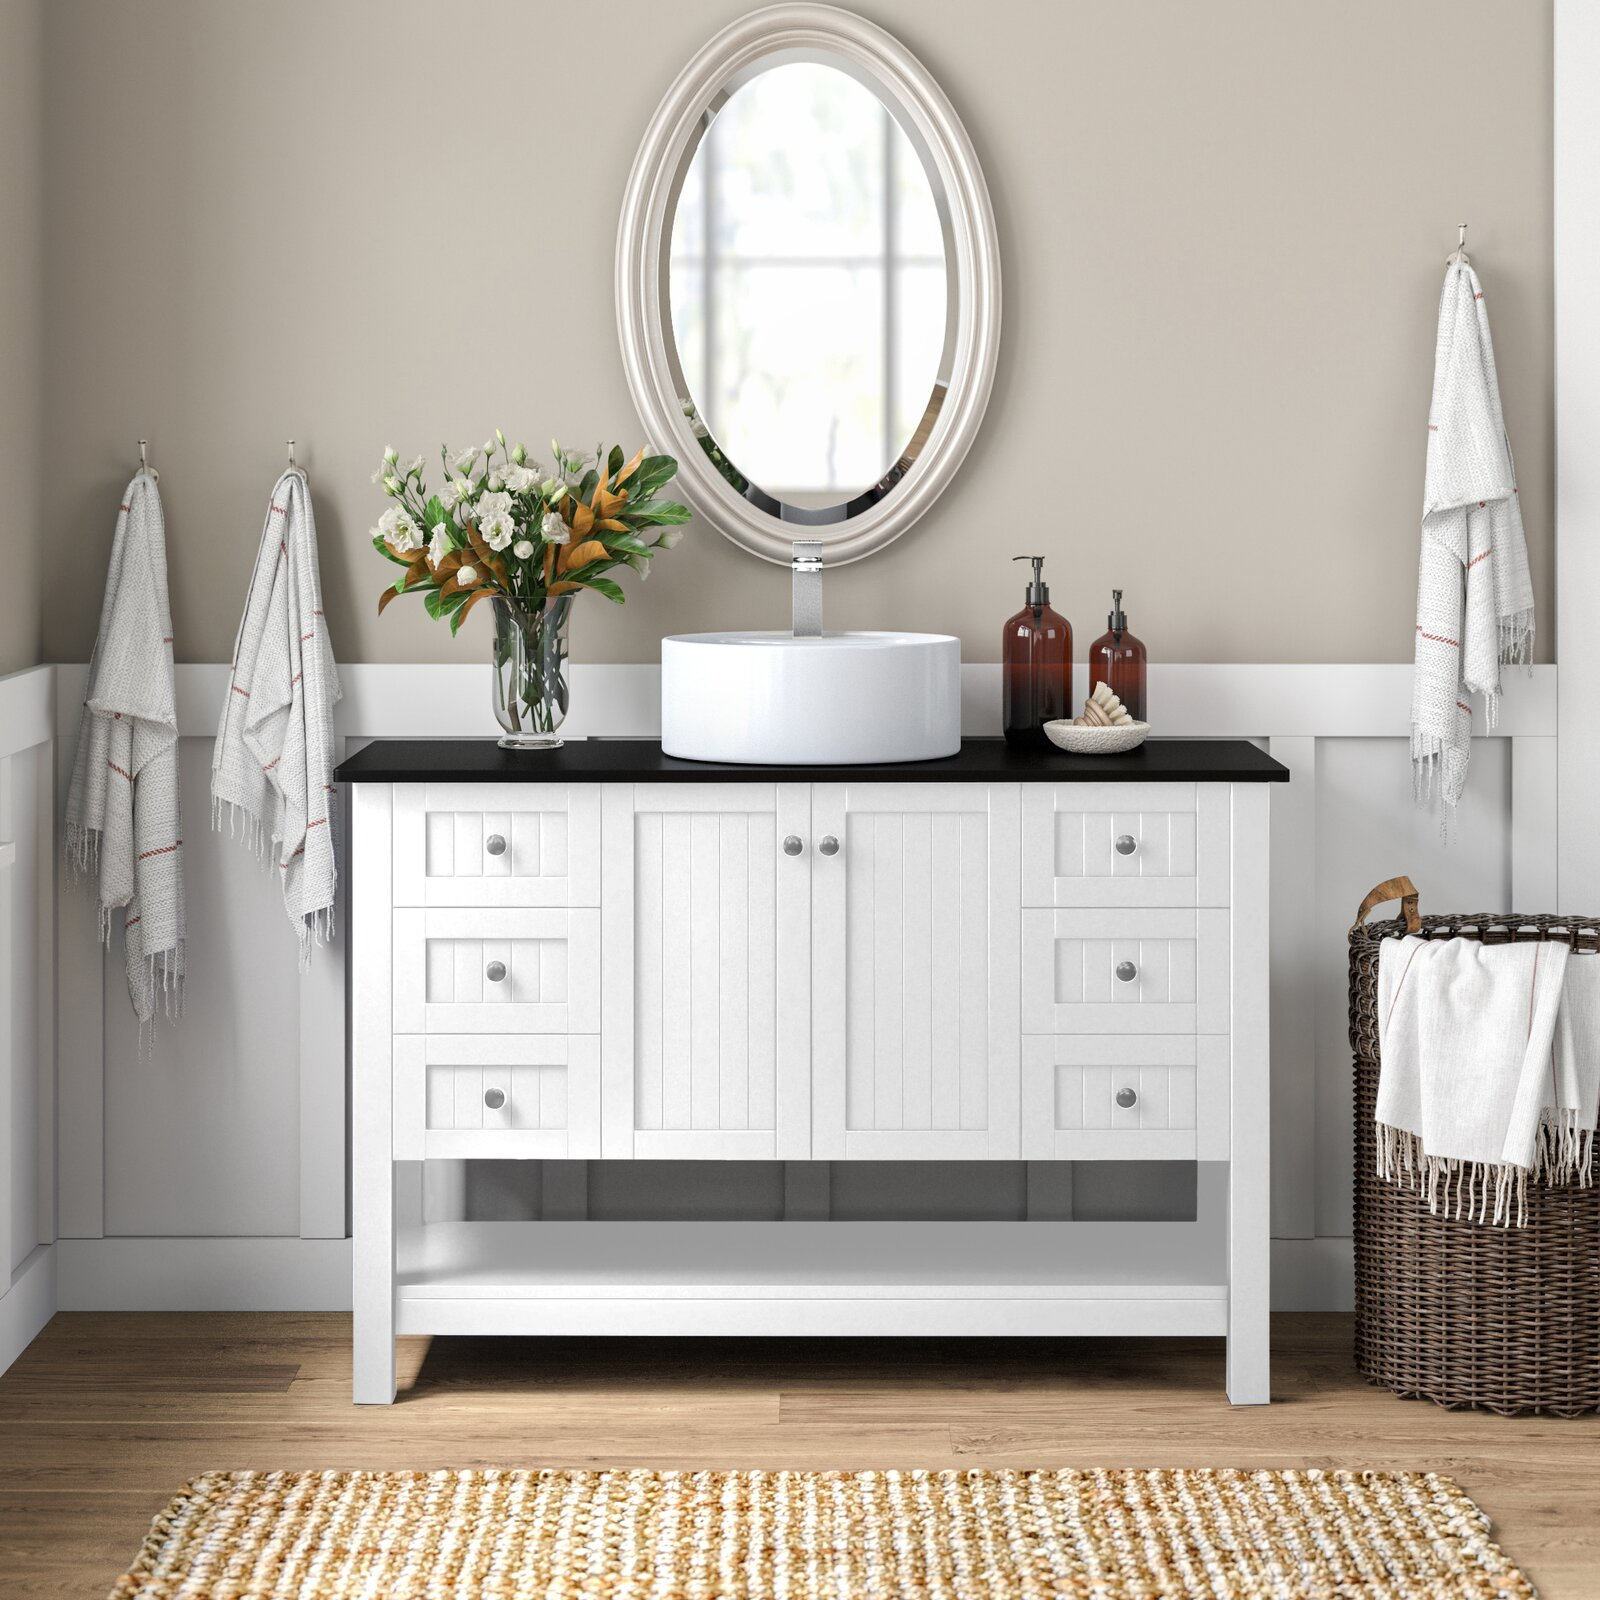 Need An Affordable Bathroom Vanity 12 Places To Shop Hunker